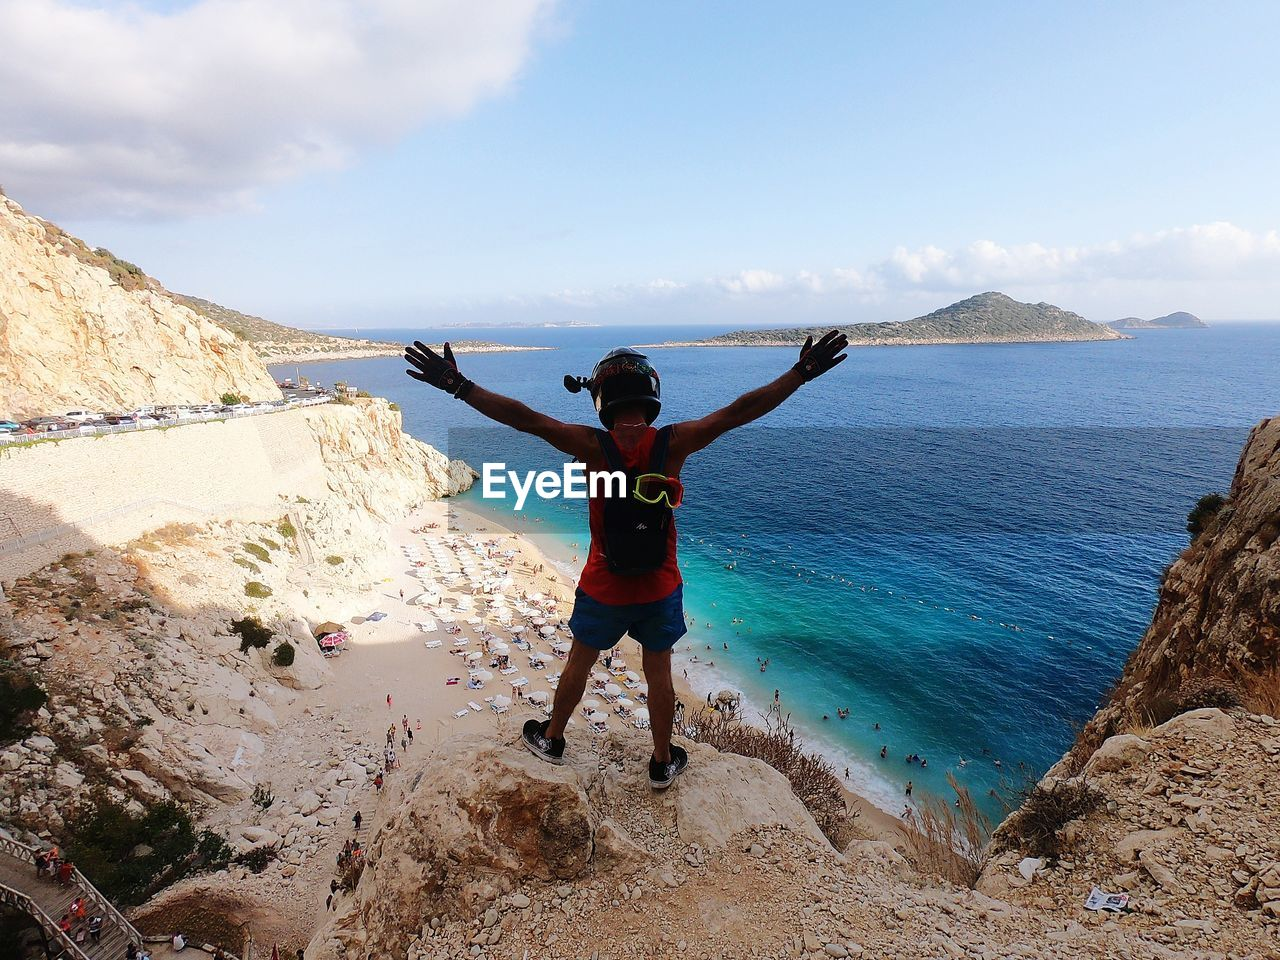 sky, leisure activity, real people, lifestyles, sea, one person, beauty in nature, water, full length, human arm, scenics - nature, standing, beach, nature, day, limb, casual clothing, rock, arms outstretched, arms raised, outdoors